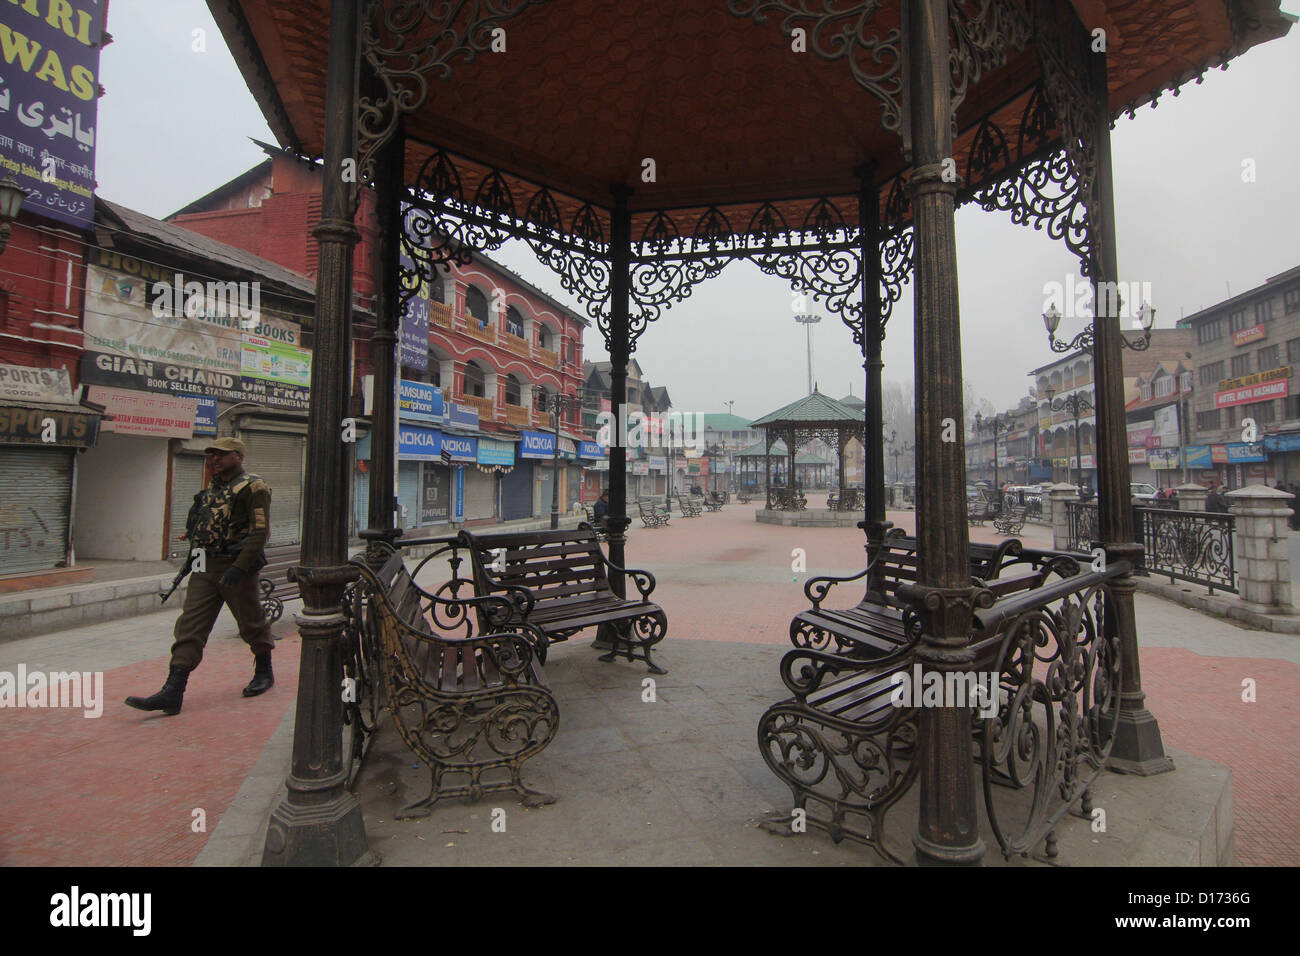 Dec. 10, 2012 - A seen of empty marke tduring  strick  to mark the International Human Rights Day in Srinagar, the - Stock Image